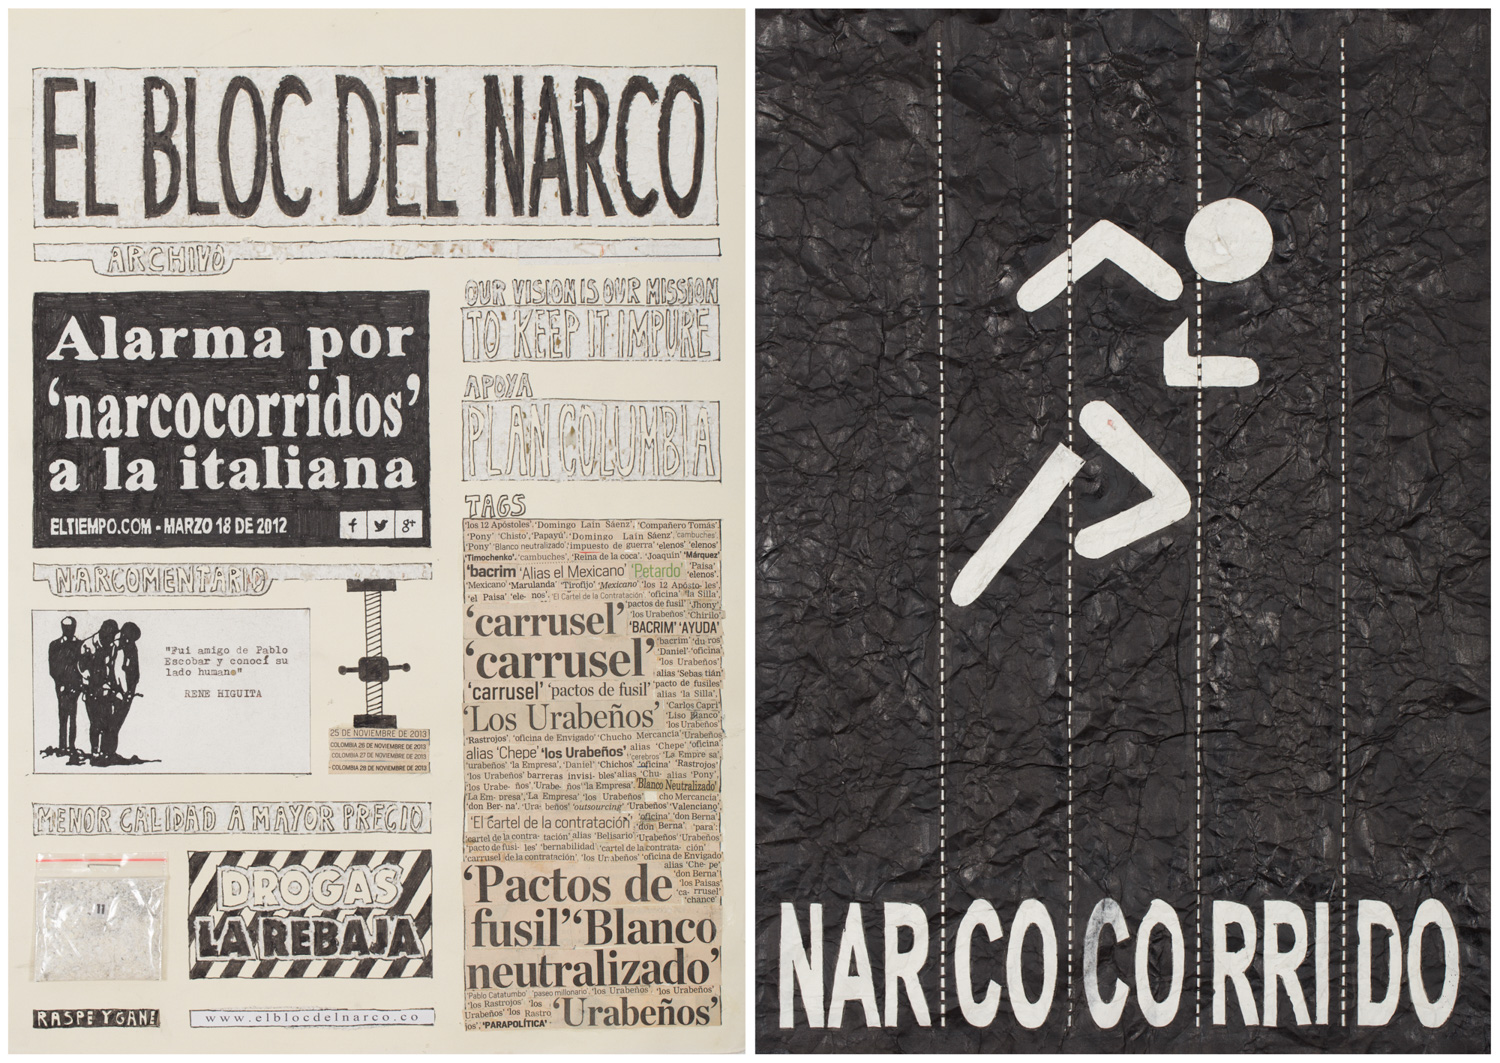 Camilo Restrepo. <em>El Bloc Del Narco #11, </em> 2016. Ink, water-soluble wax pastel, tape, glue, newspaper clippings, staples, plastic bag, paper dust and saliva on paper, 16 1/2 x 24 (41.9 x 61 cm)